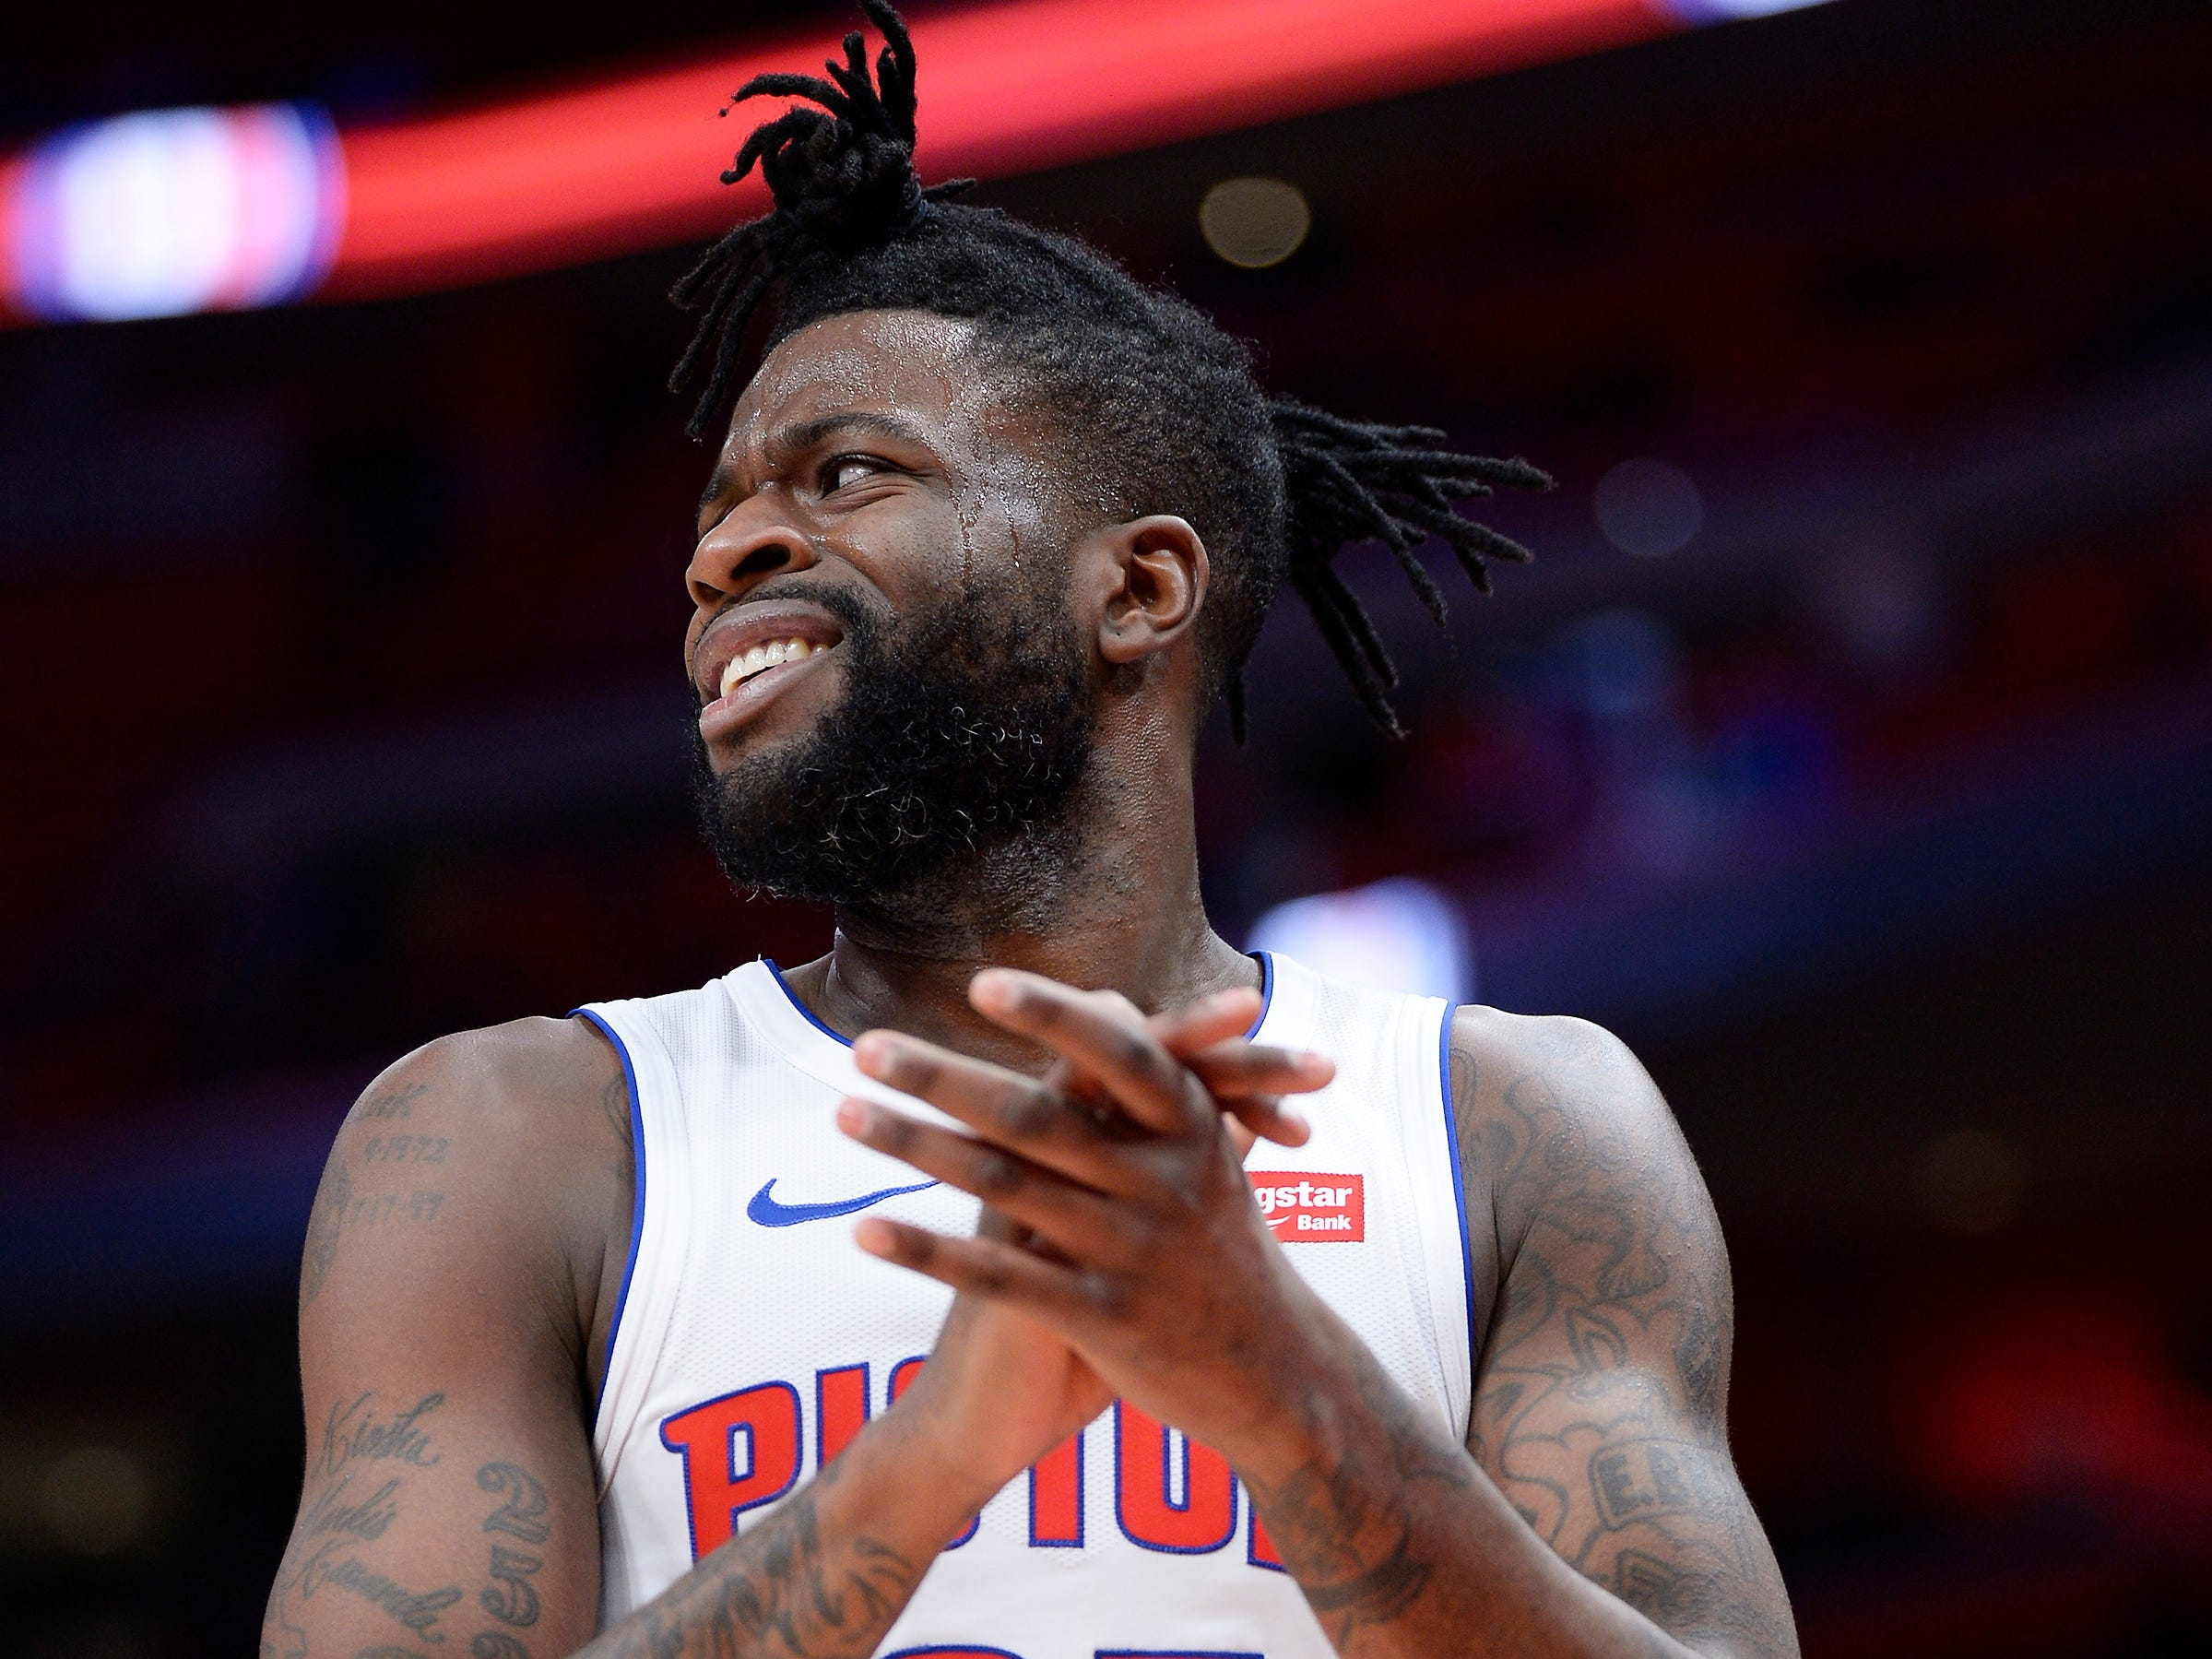 Reggie Bullock -- Stats: 12.2 pts., 2.6 rebs., 40% 3FG in 33 games. Age: 27. After finishing second in the league at 45 percent on 3-pointers last season, he's having another solid performance. He had another slow start, but he's settling in nicely, scoring off double-teams on Griffin. Grade: B